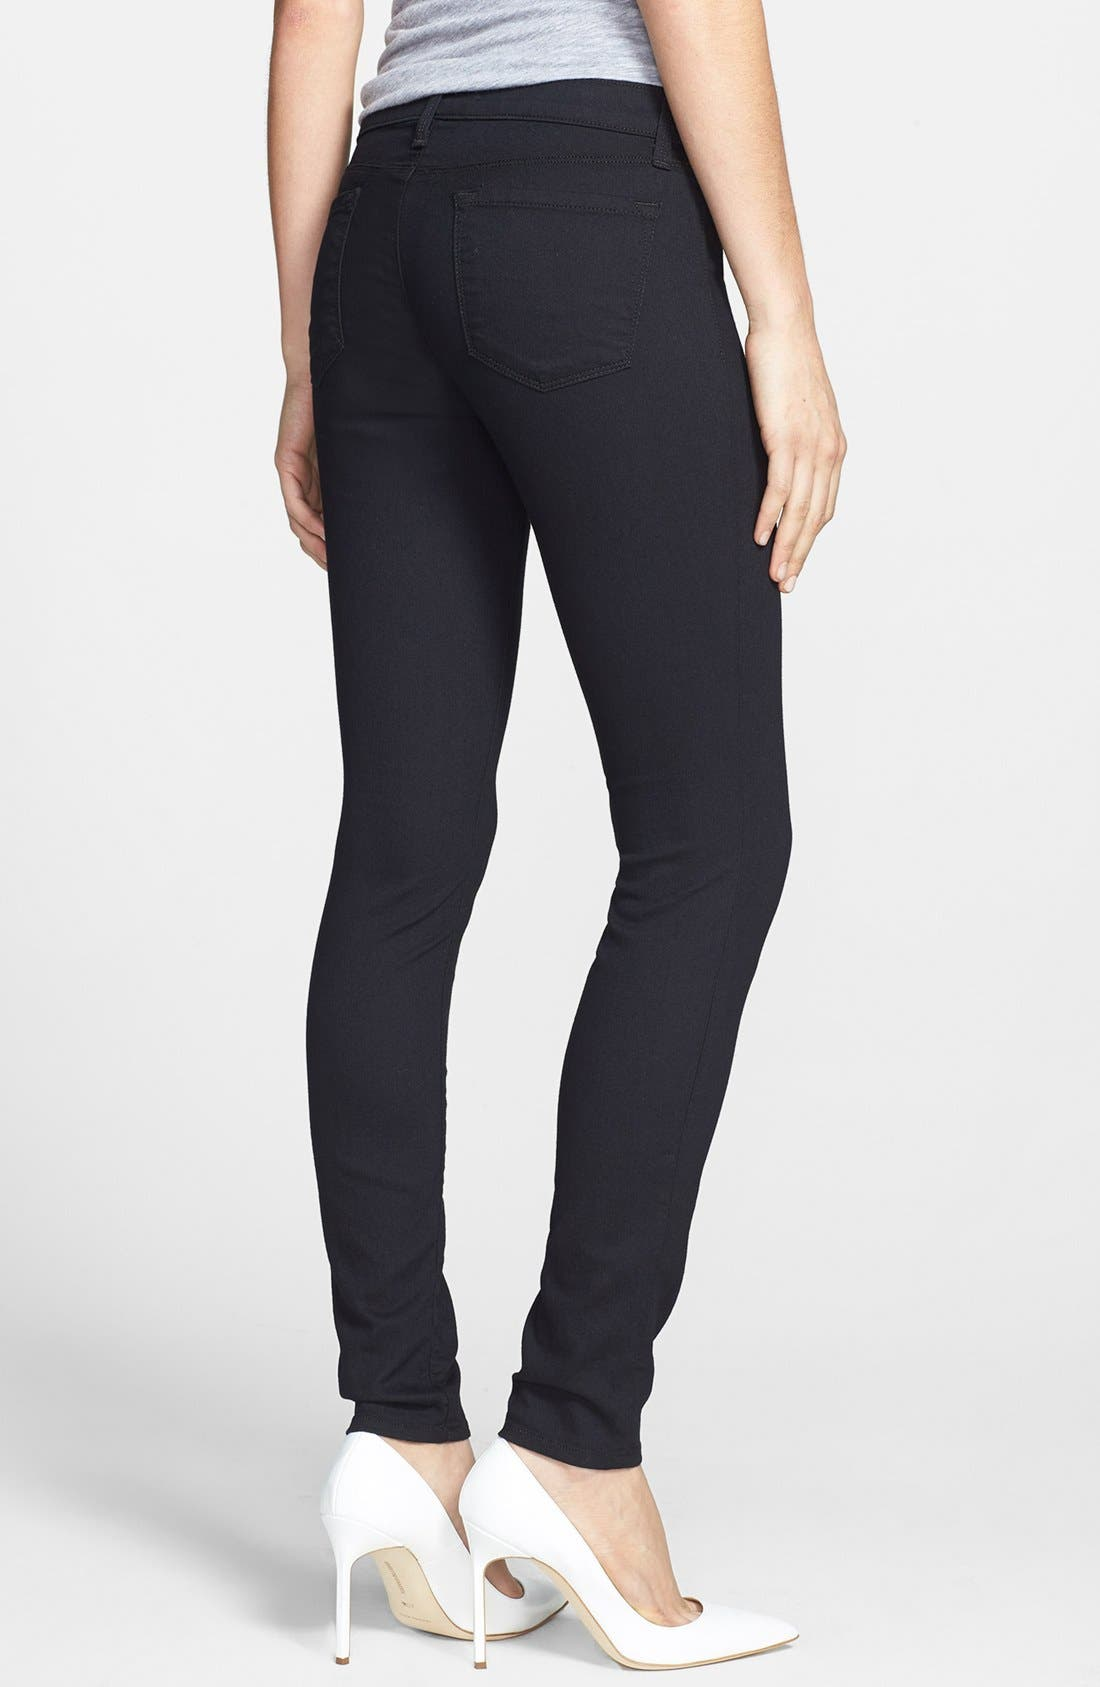 Super Skinny Jeans,                             Alternate thumbnail 3, color,                             002